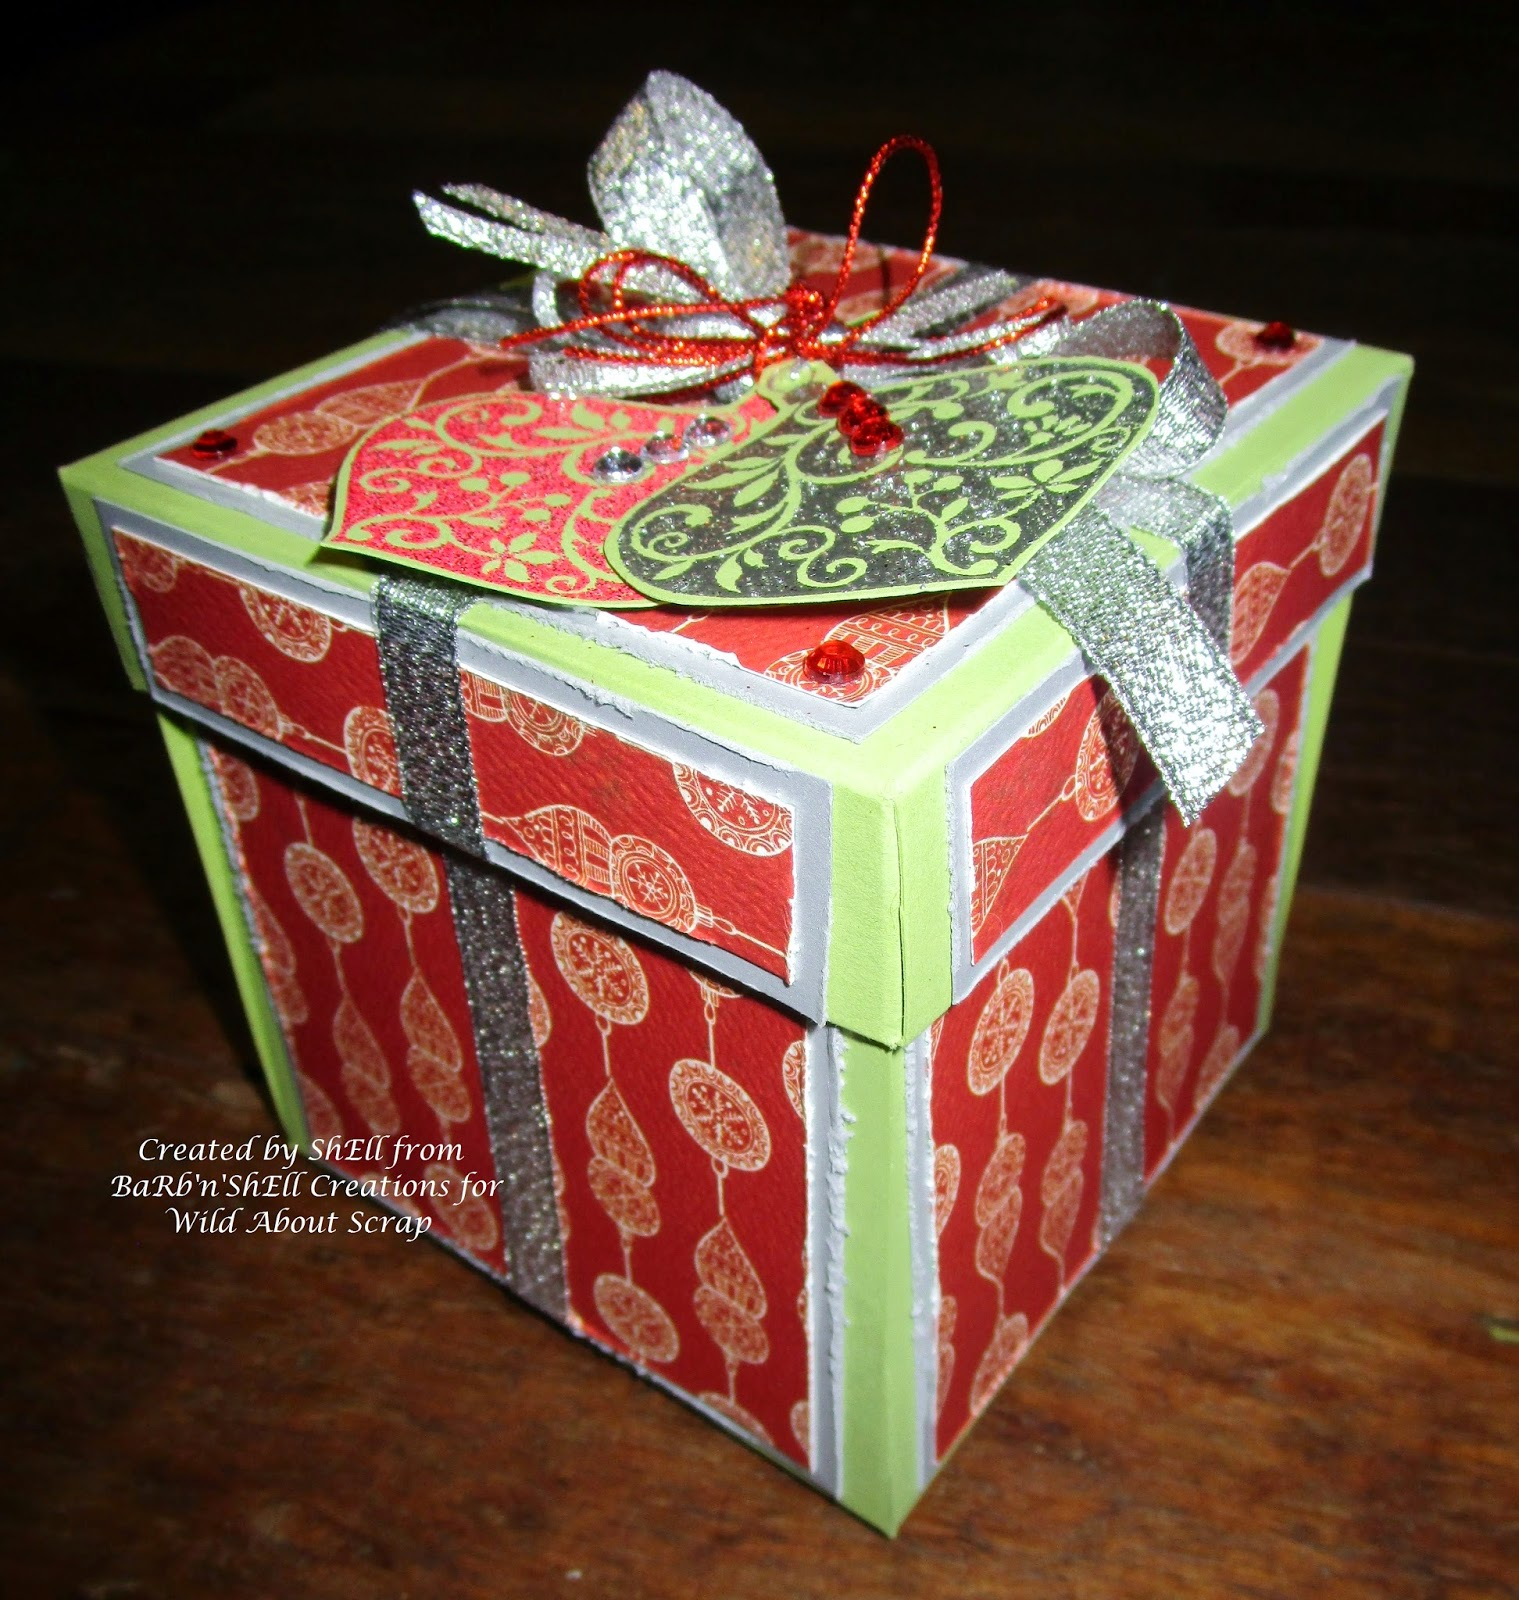 It Looks Just Like A Present Keep Reading And You Will See The Surprise Inside